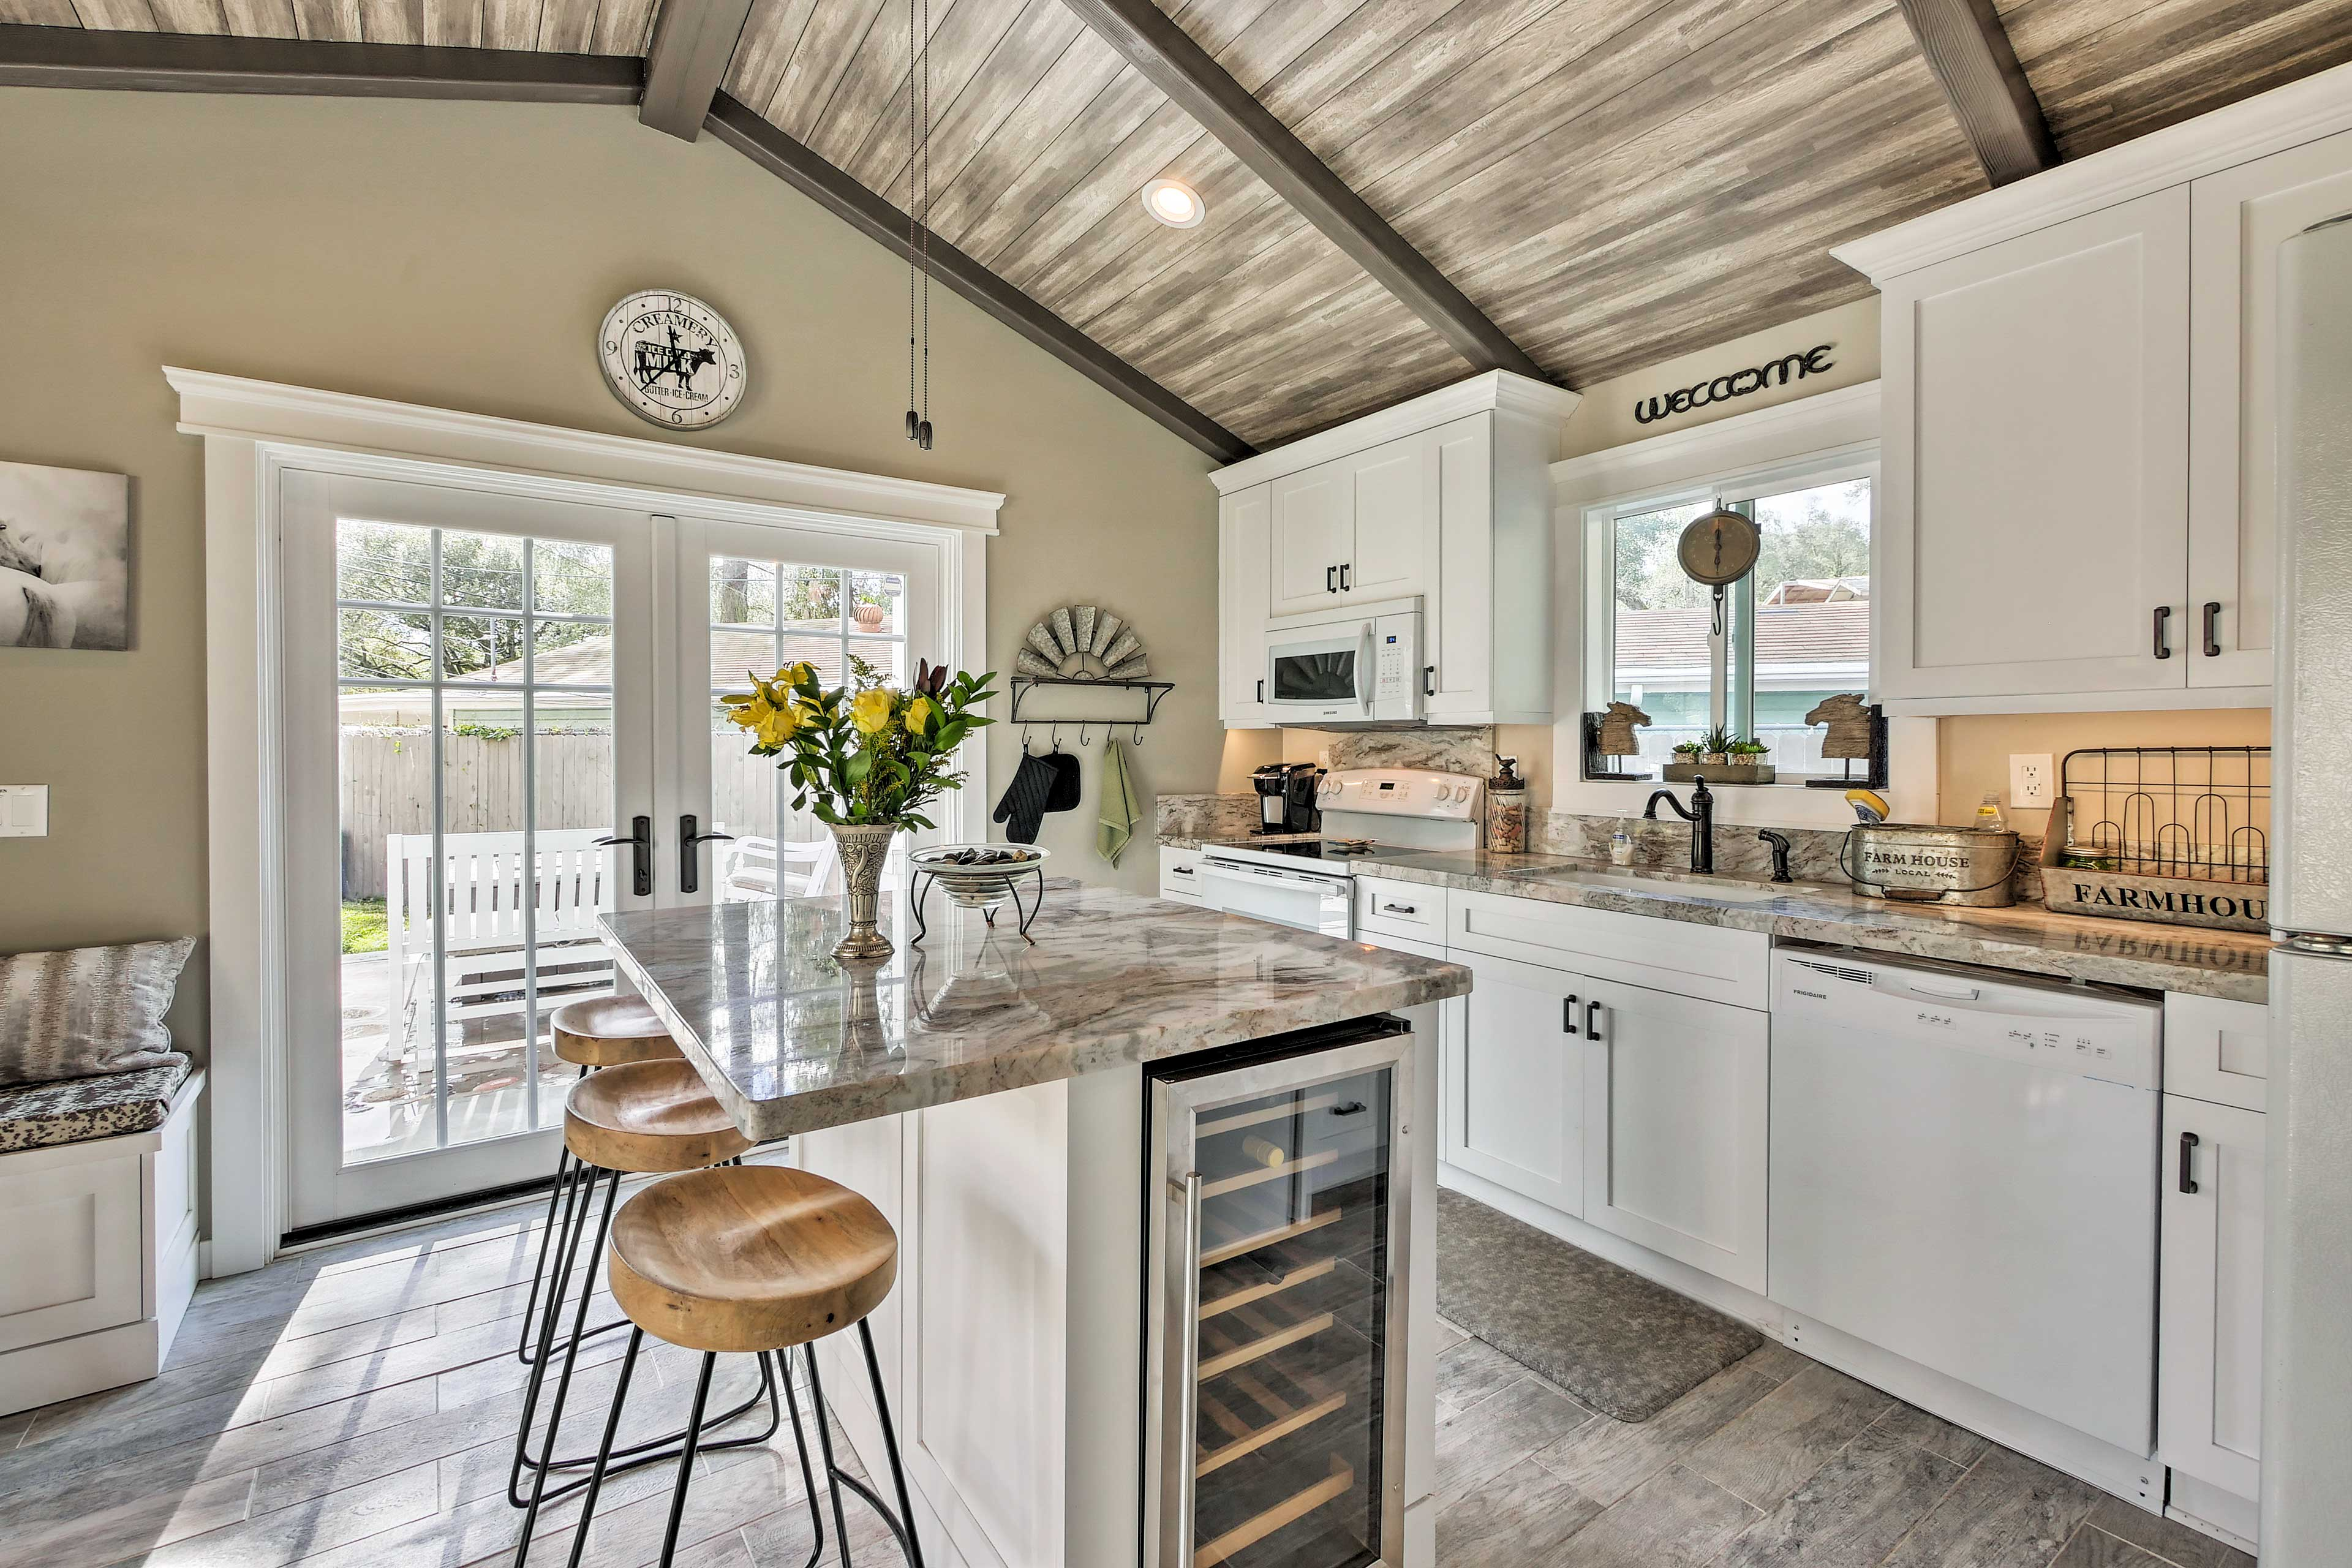 Bright, modern and charming, the kitchen is fully equipped!